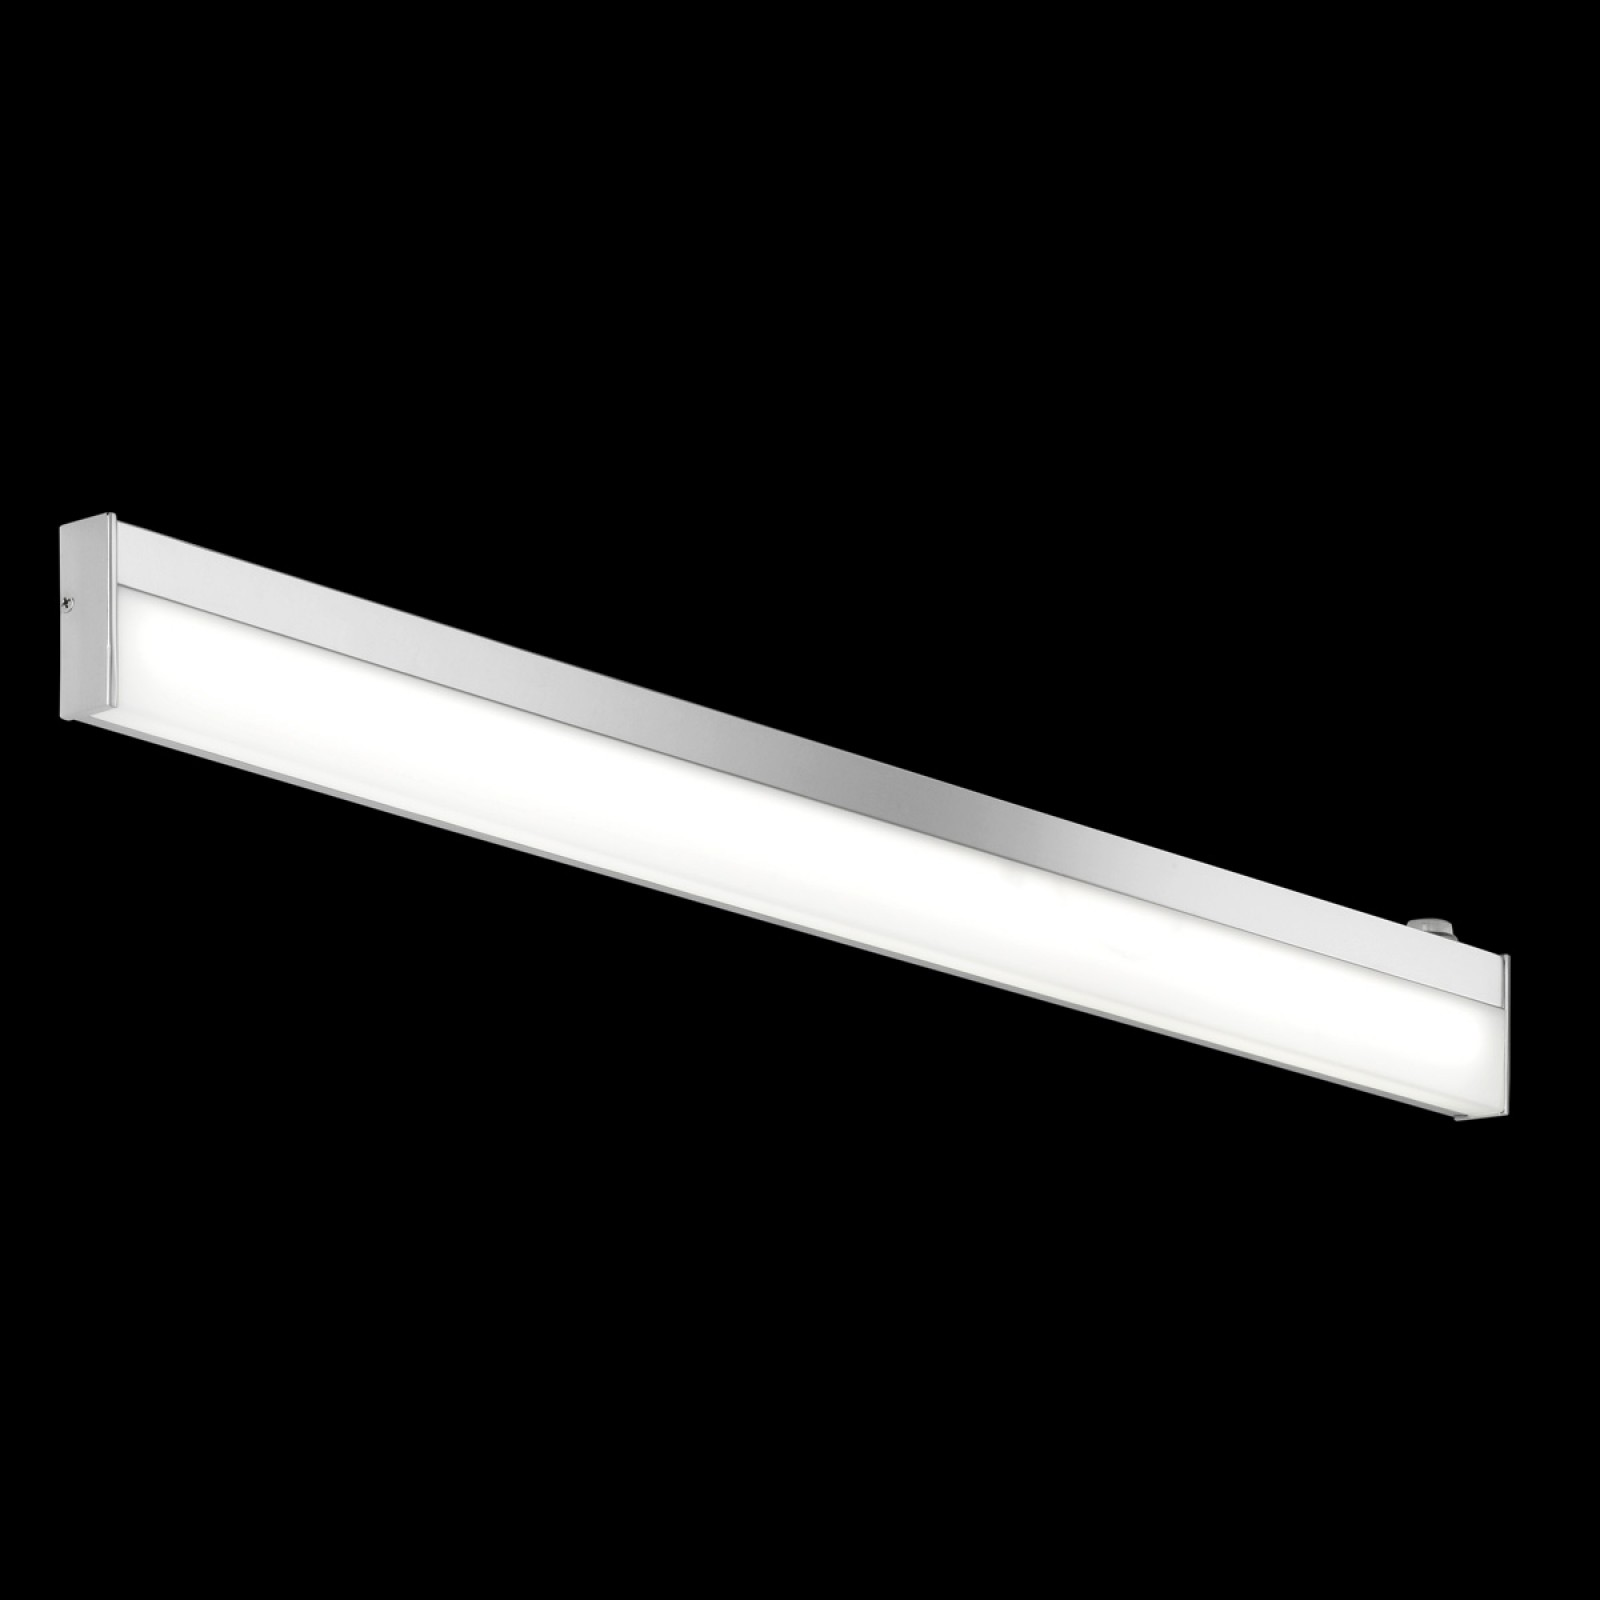 LED-seinävalaisin H2O 2817 880x25x70 mm IP44 kromi